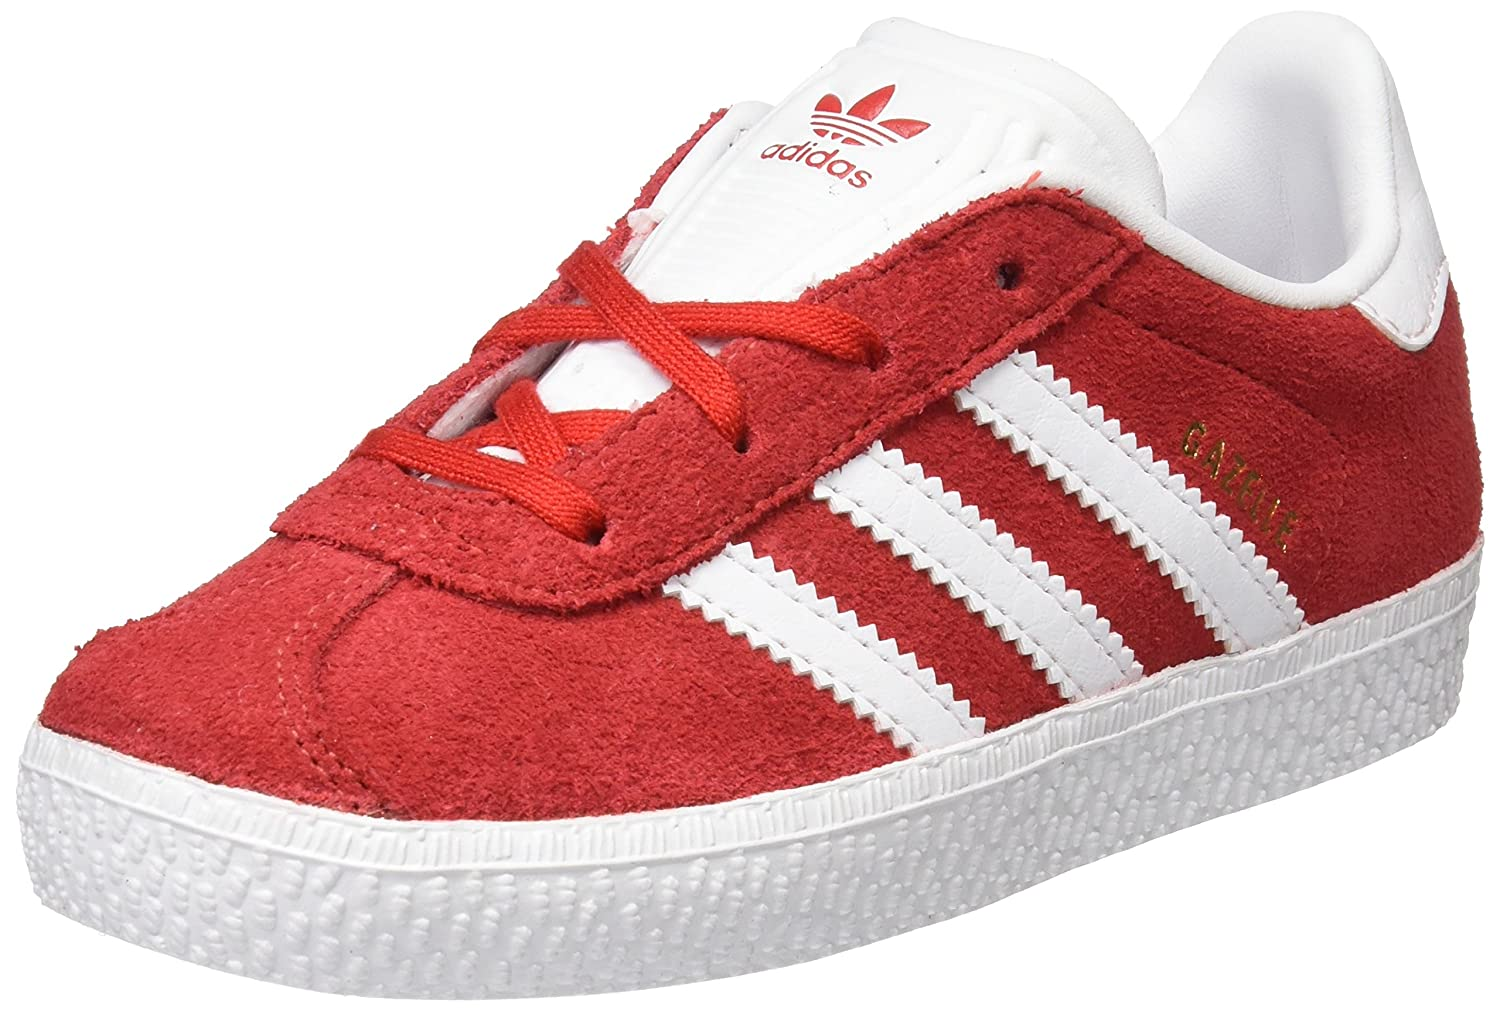 adidas Unisex Babies' Gazelle I Trainers adidas Originals BY9565